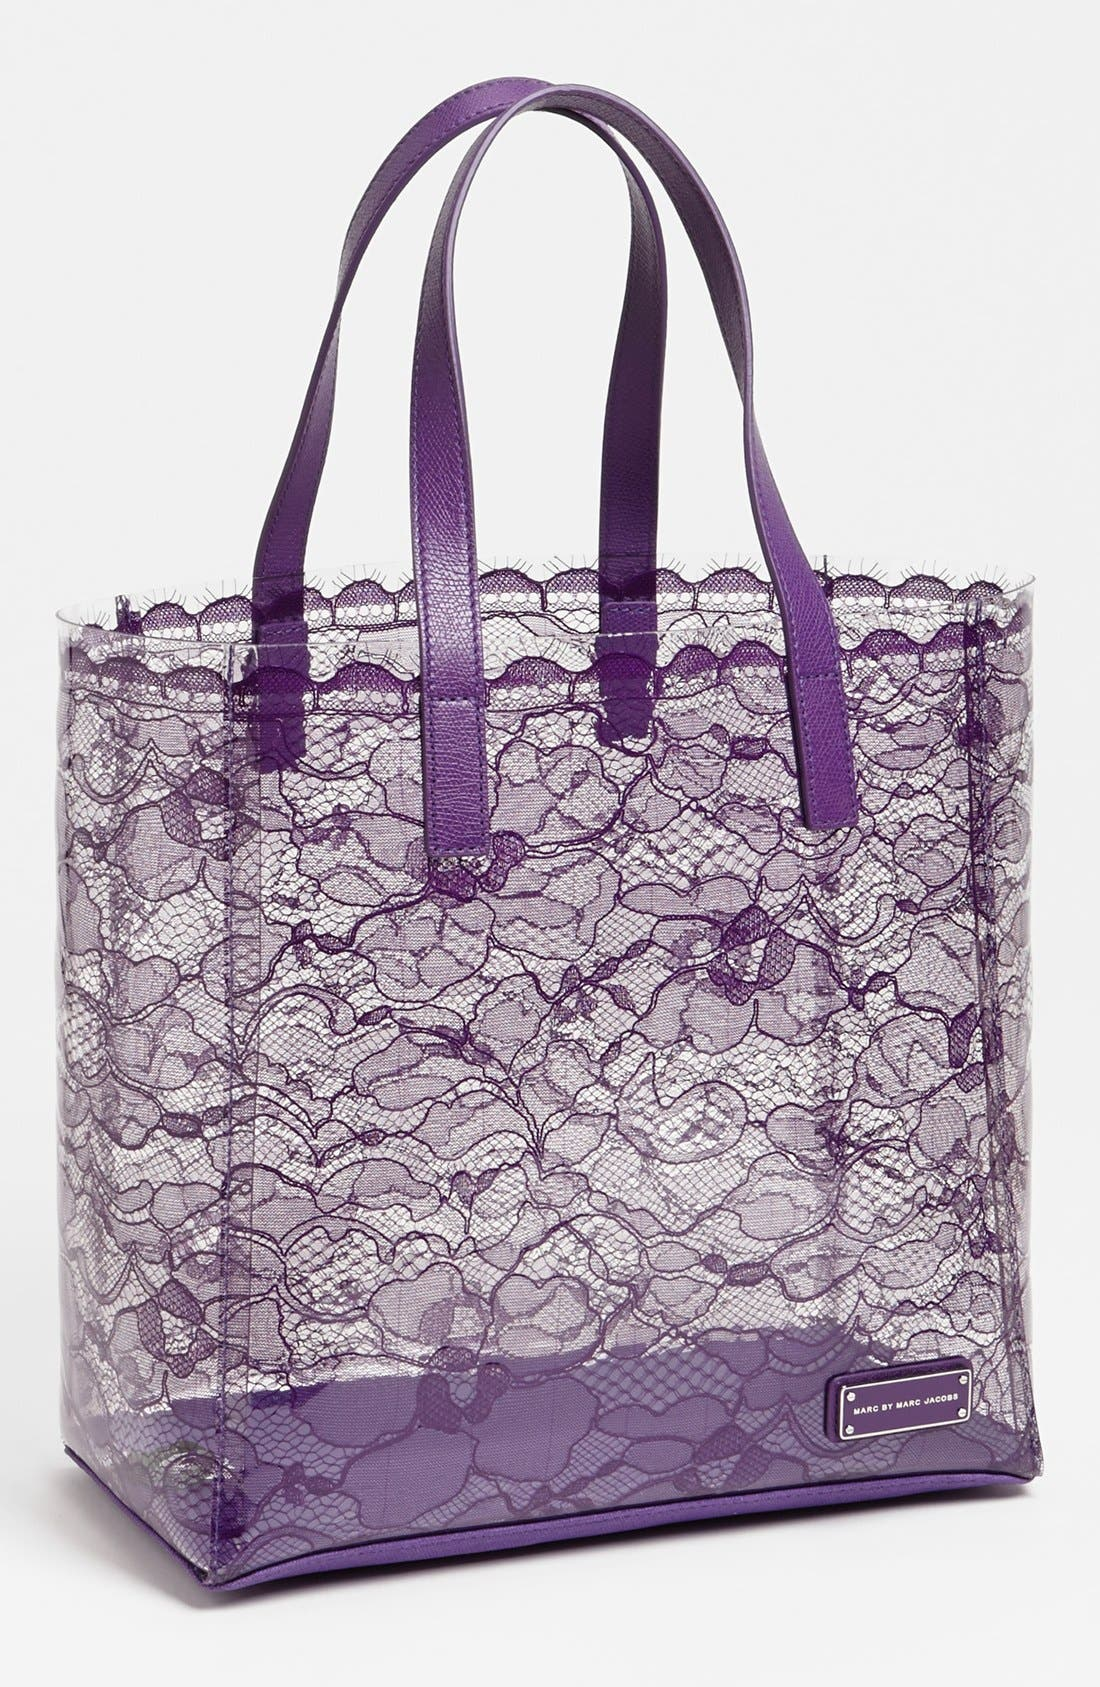 Alternate Image 1 Selected - MARC BY MARC JACOBS 'Lace - Medium' Tote